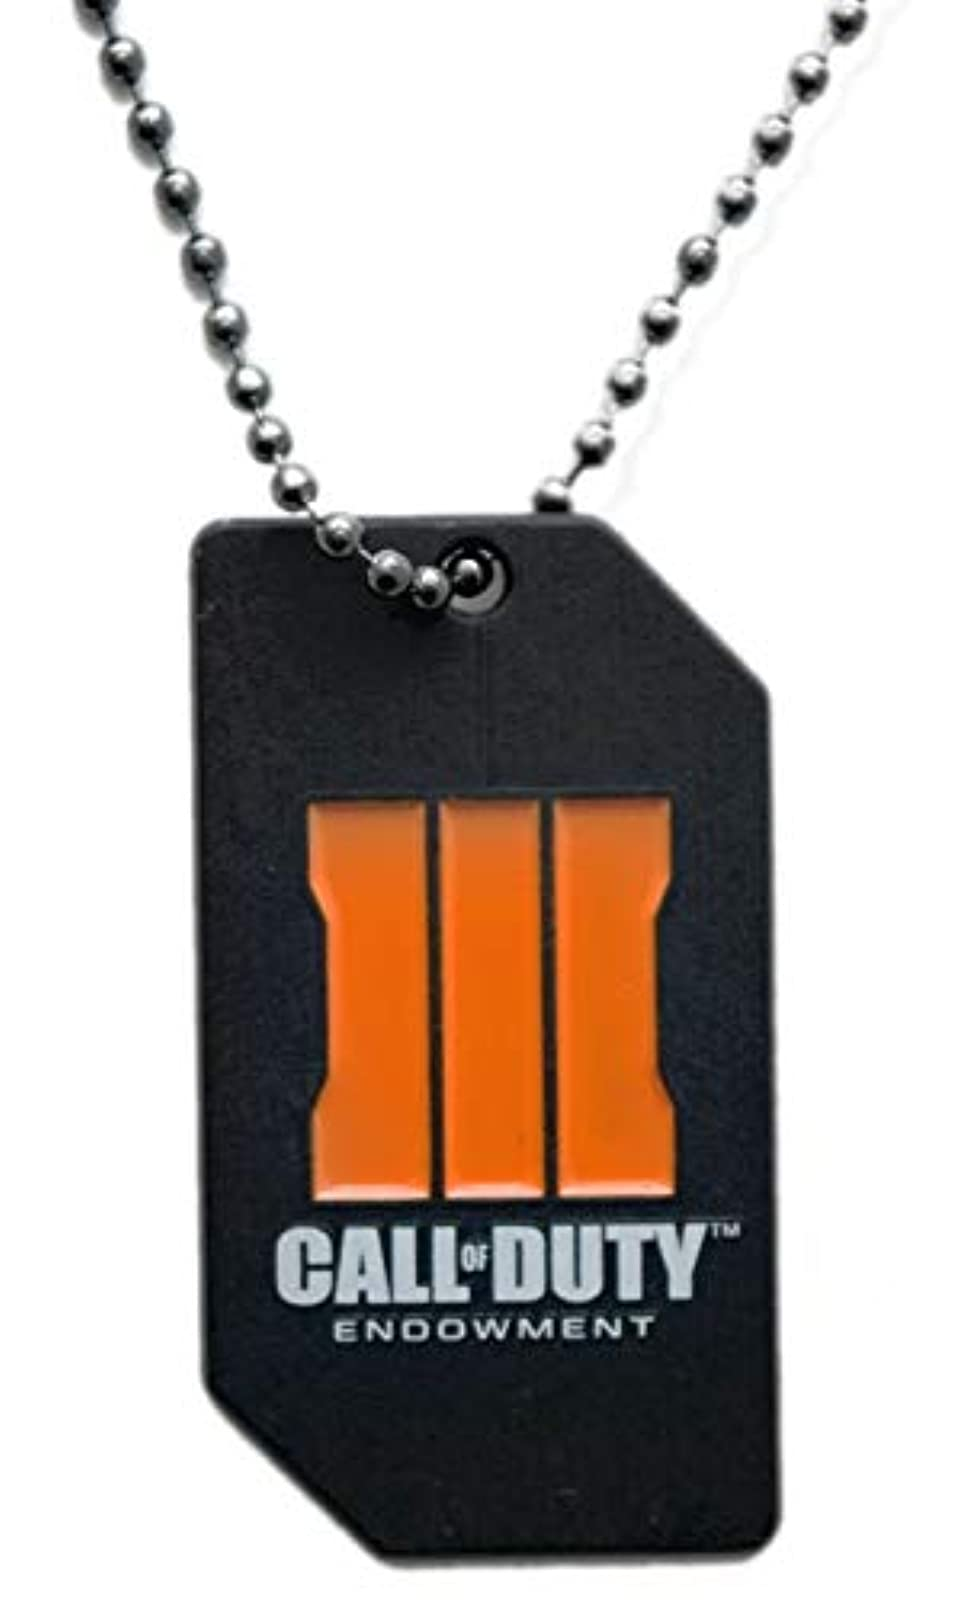 Call Of Duty: Black Ops 3 Endowment Limited Edition Dog Tag COD III Pendant Neck